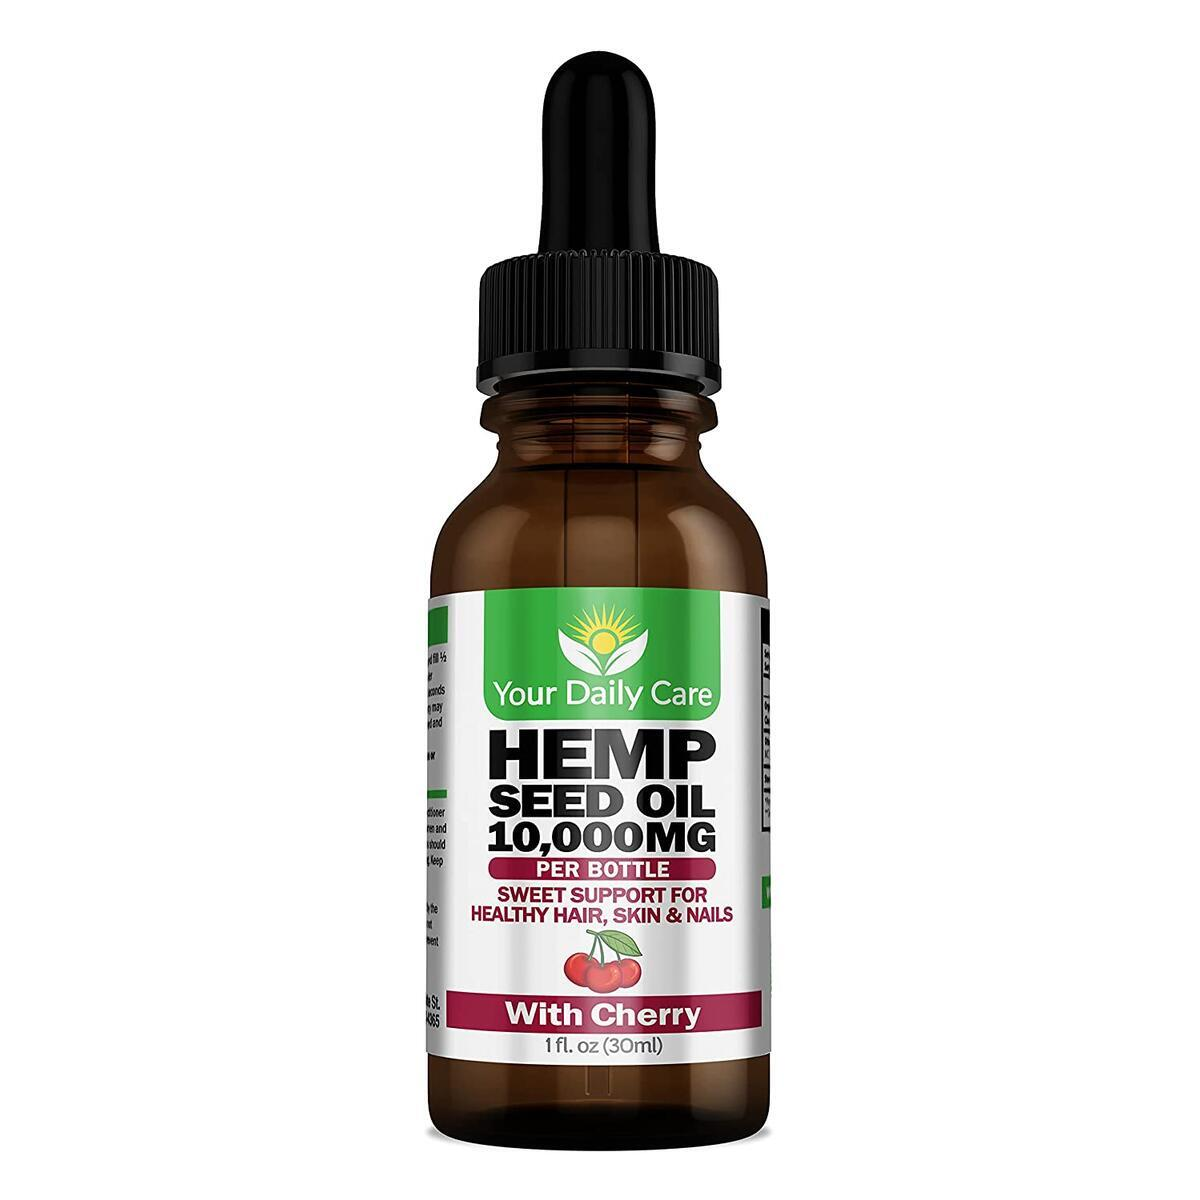 Premium Organic Hemp Oil + Organic Cherry Kernel Oil; Skin, Hair and Nails; Natural Calming Blend from Your Daily Care